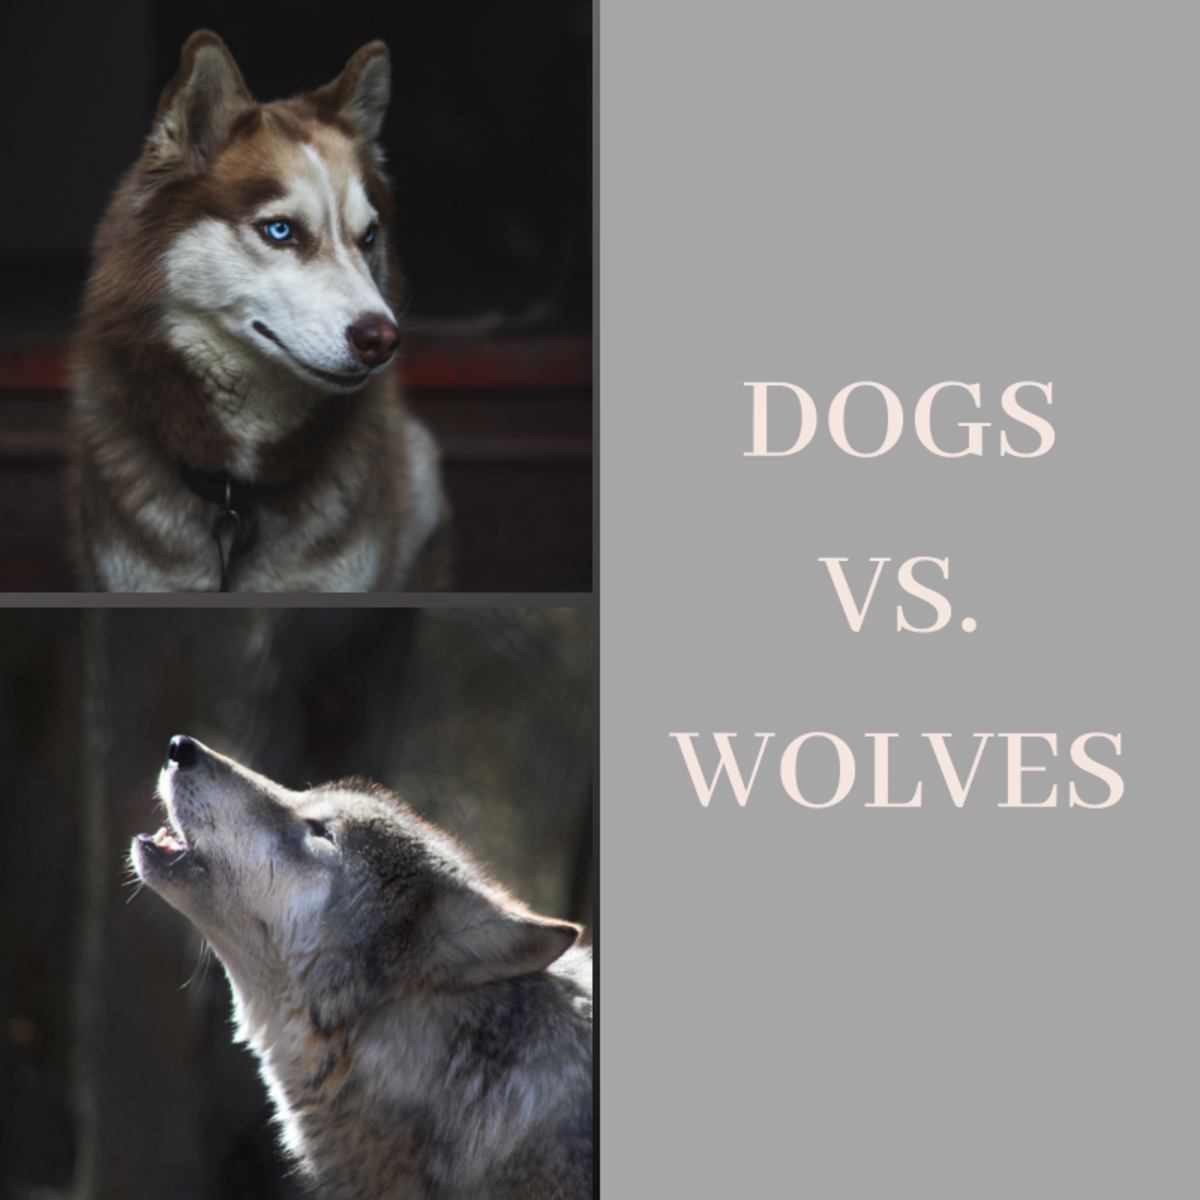 How are dogs and wolves the same?